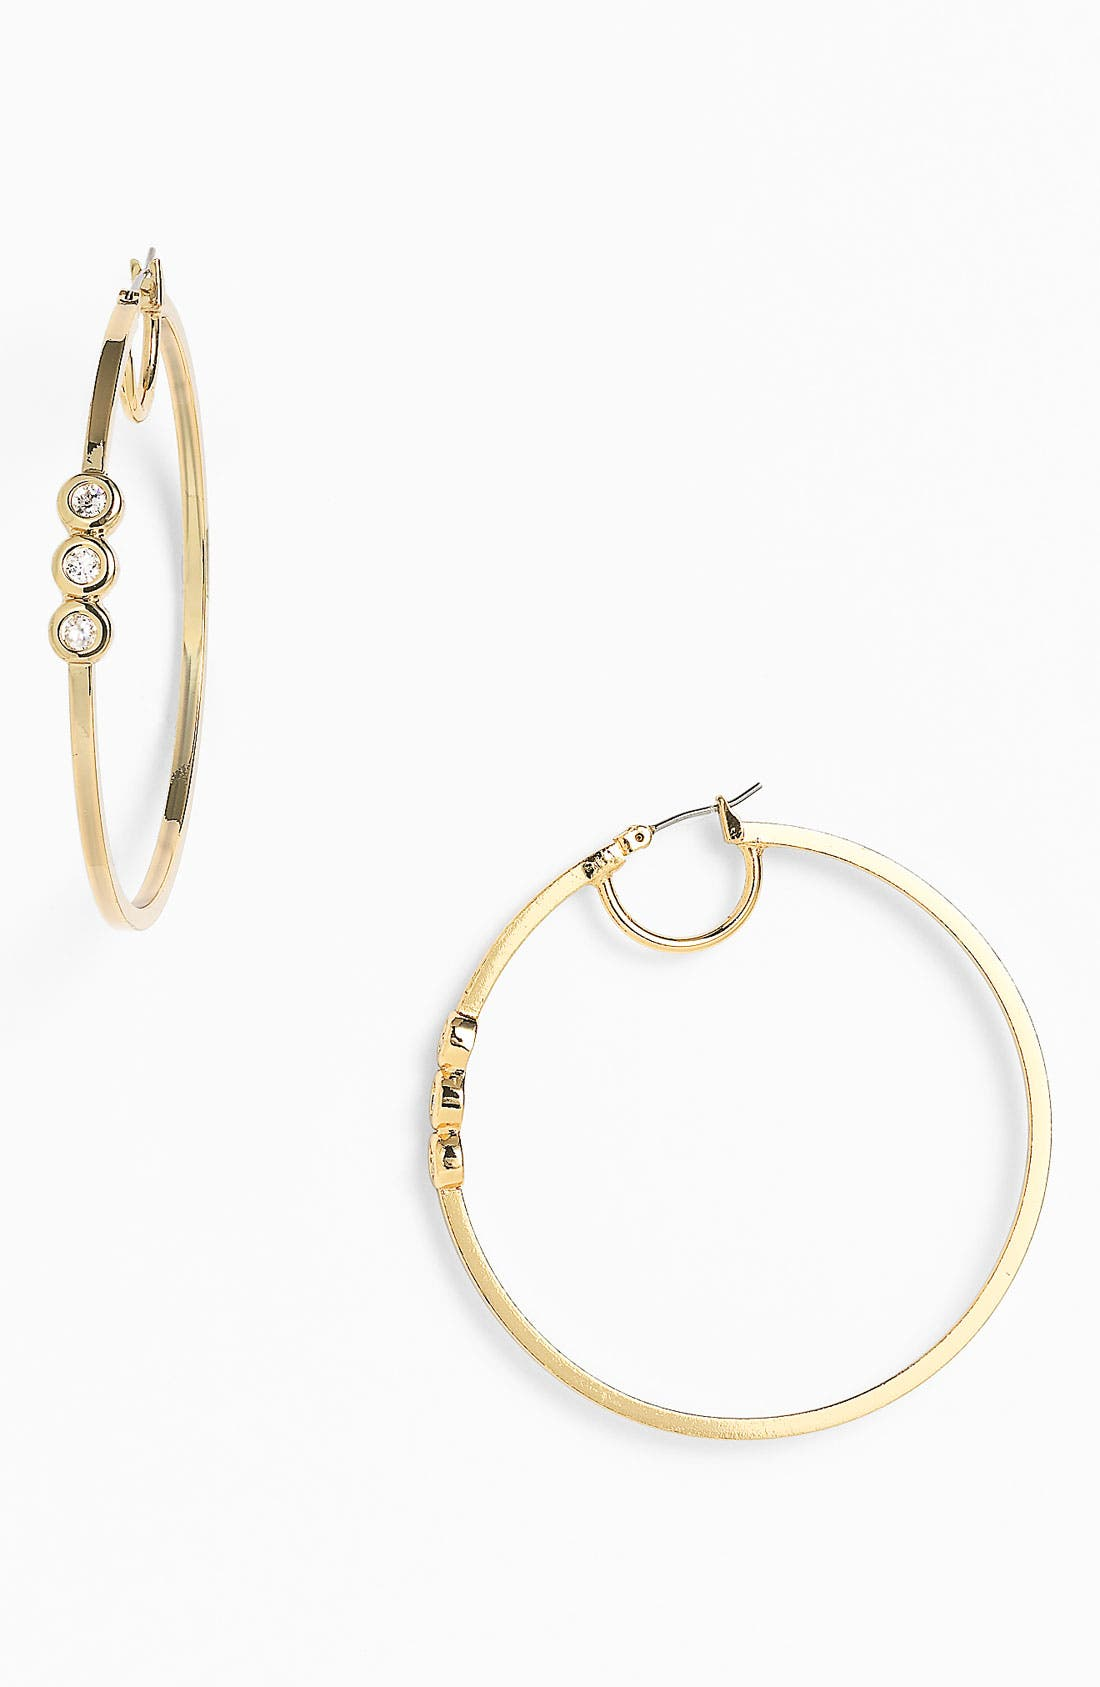 Alternate Image 1 Selected - Vince Camuto 'Basics' Hoop Earrings